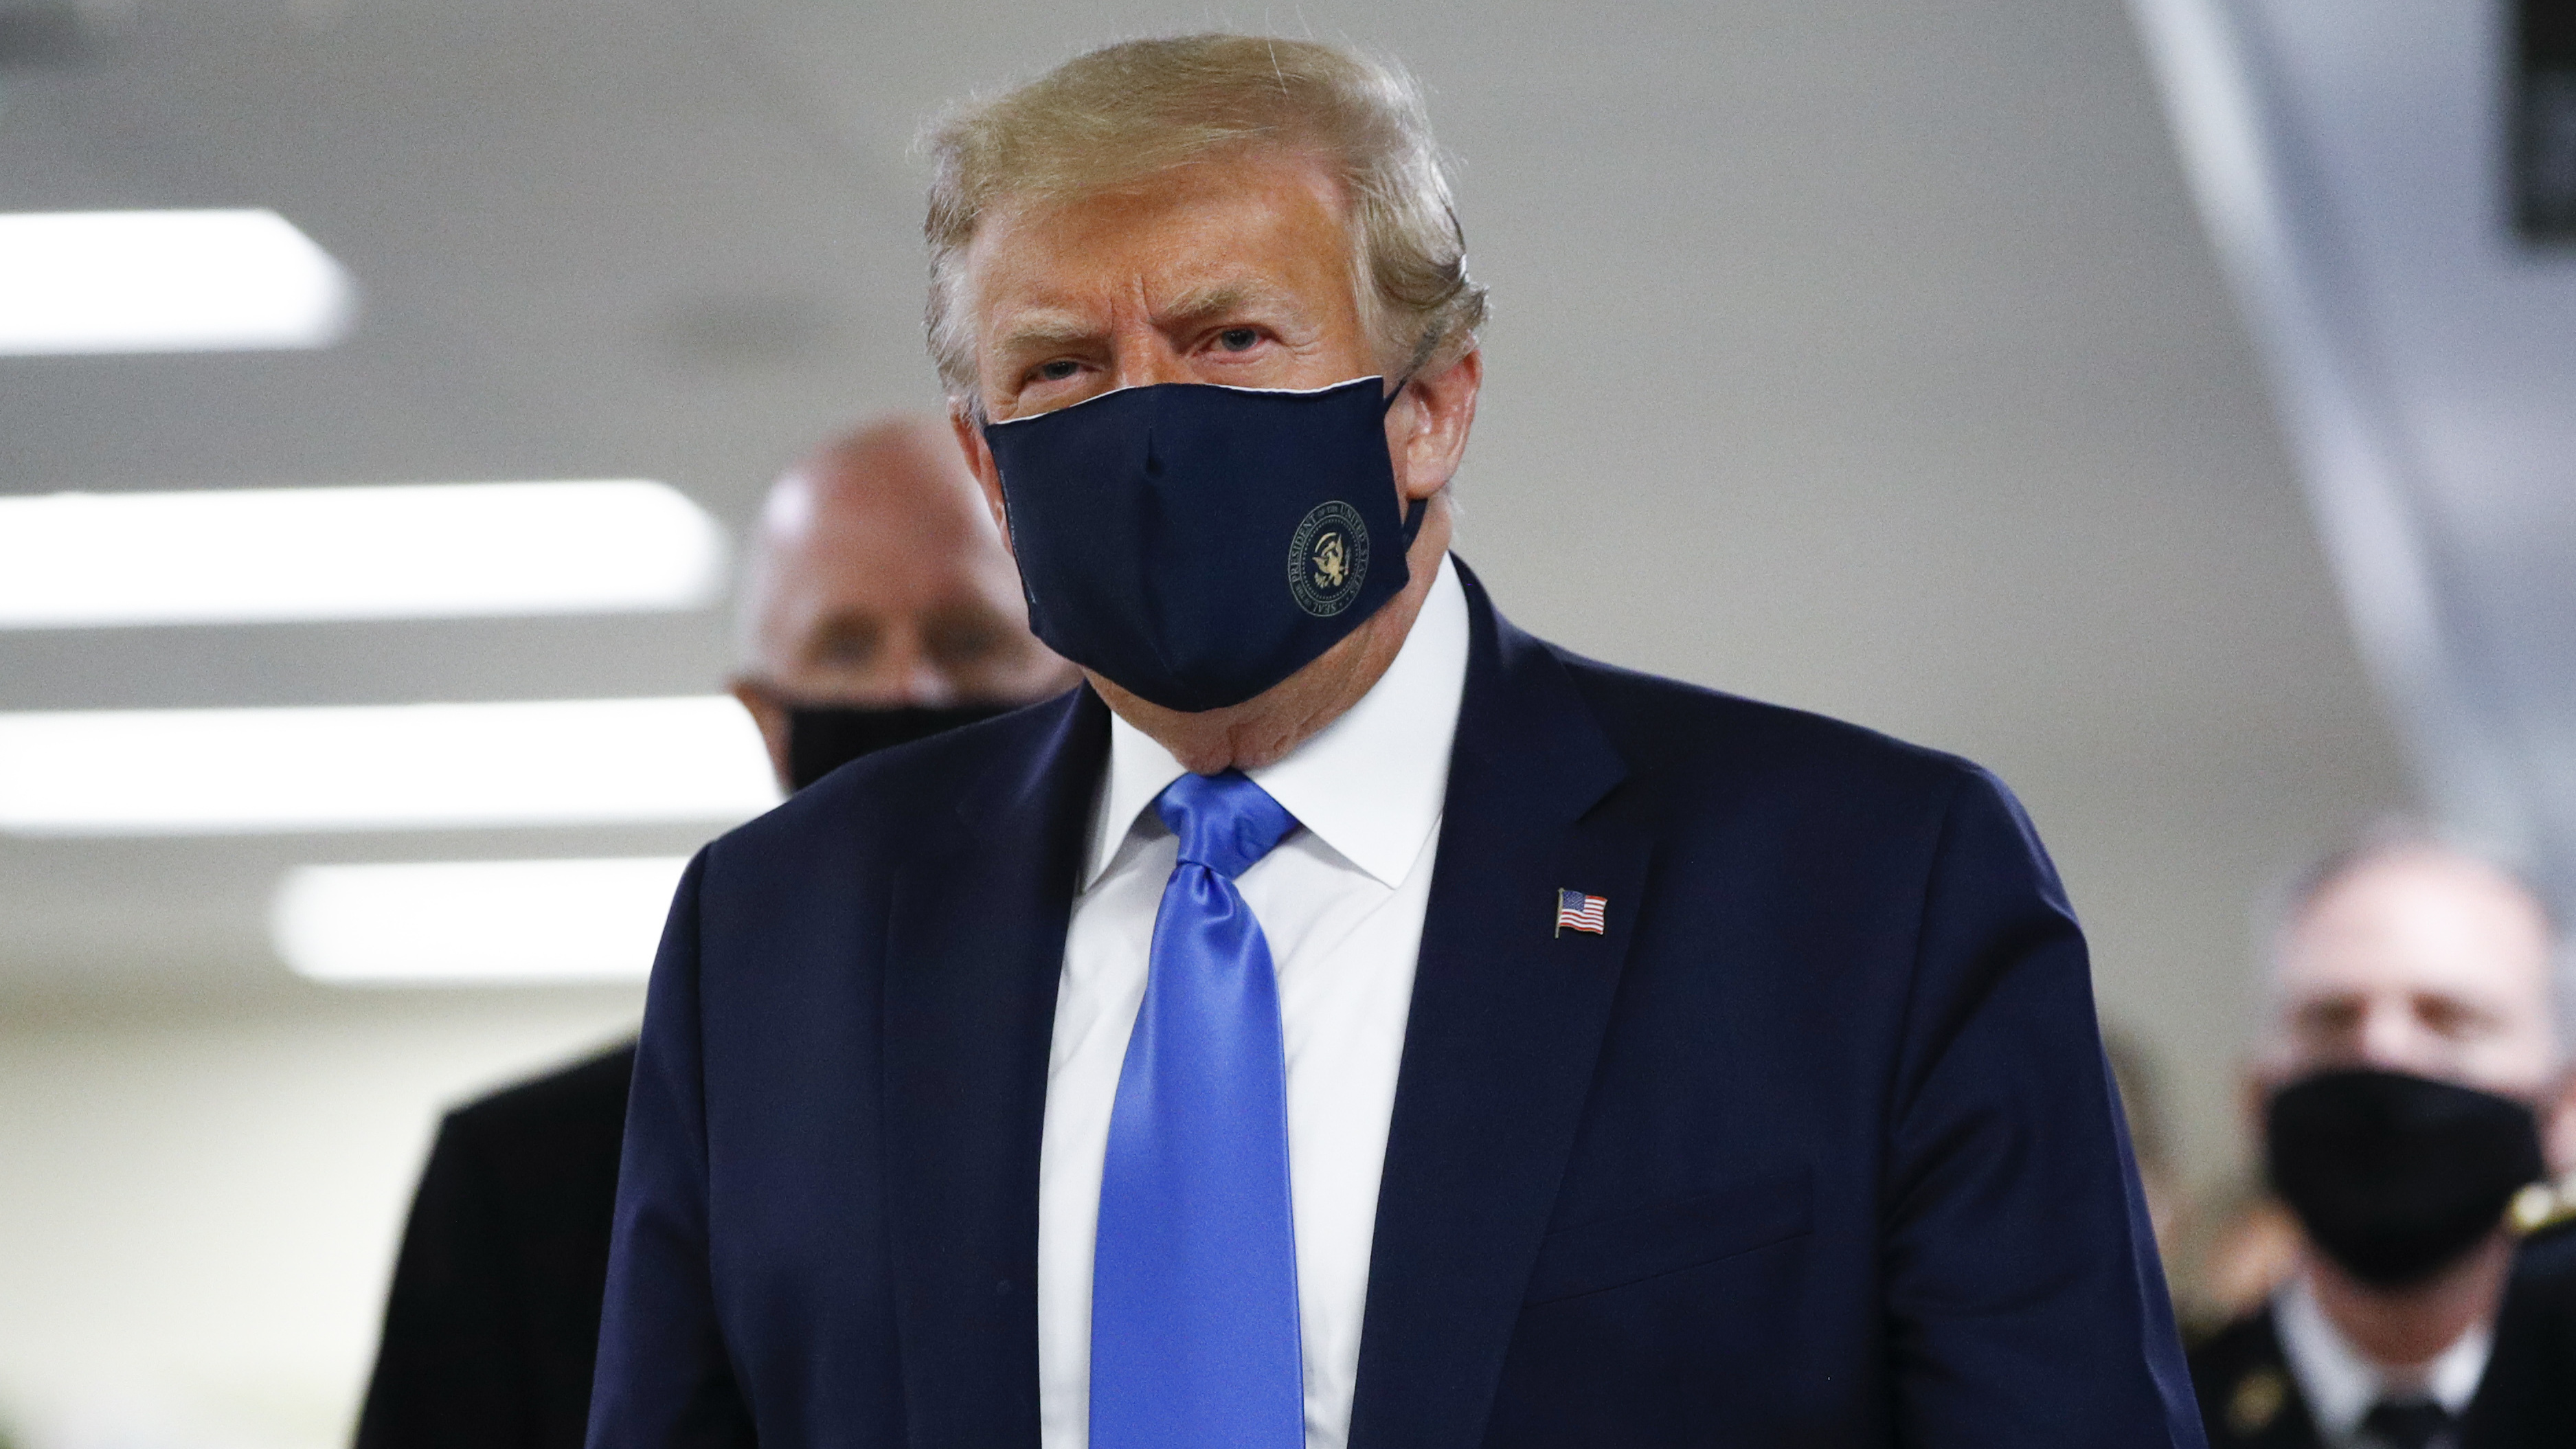 President Trump Wears Face Mask In Public For First Time During Visit To Walter Reed